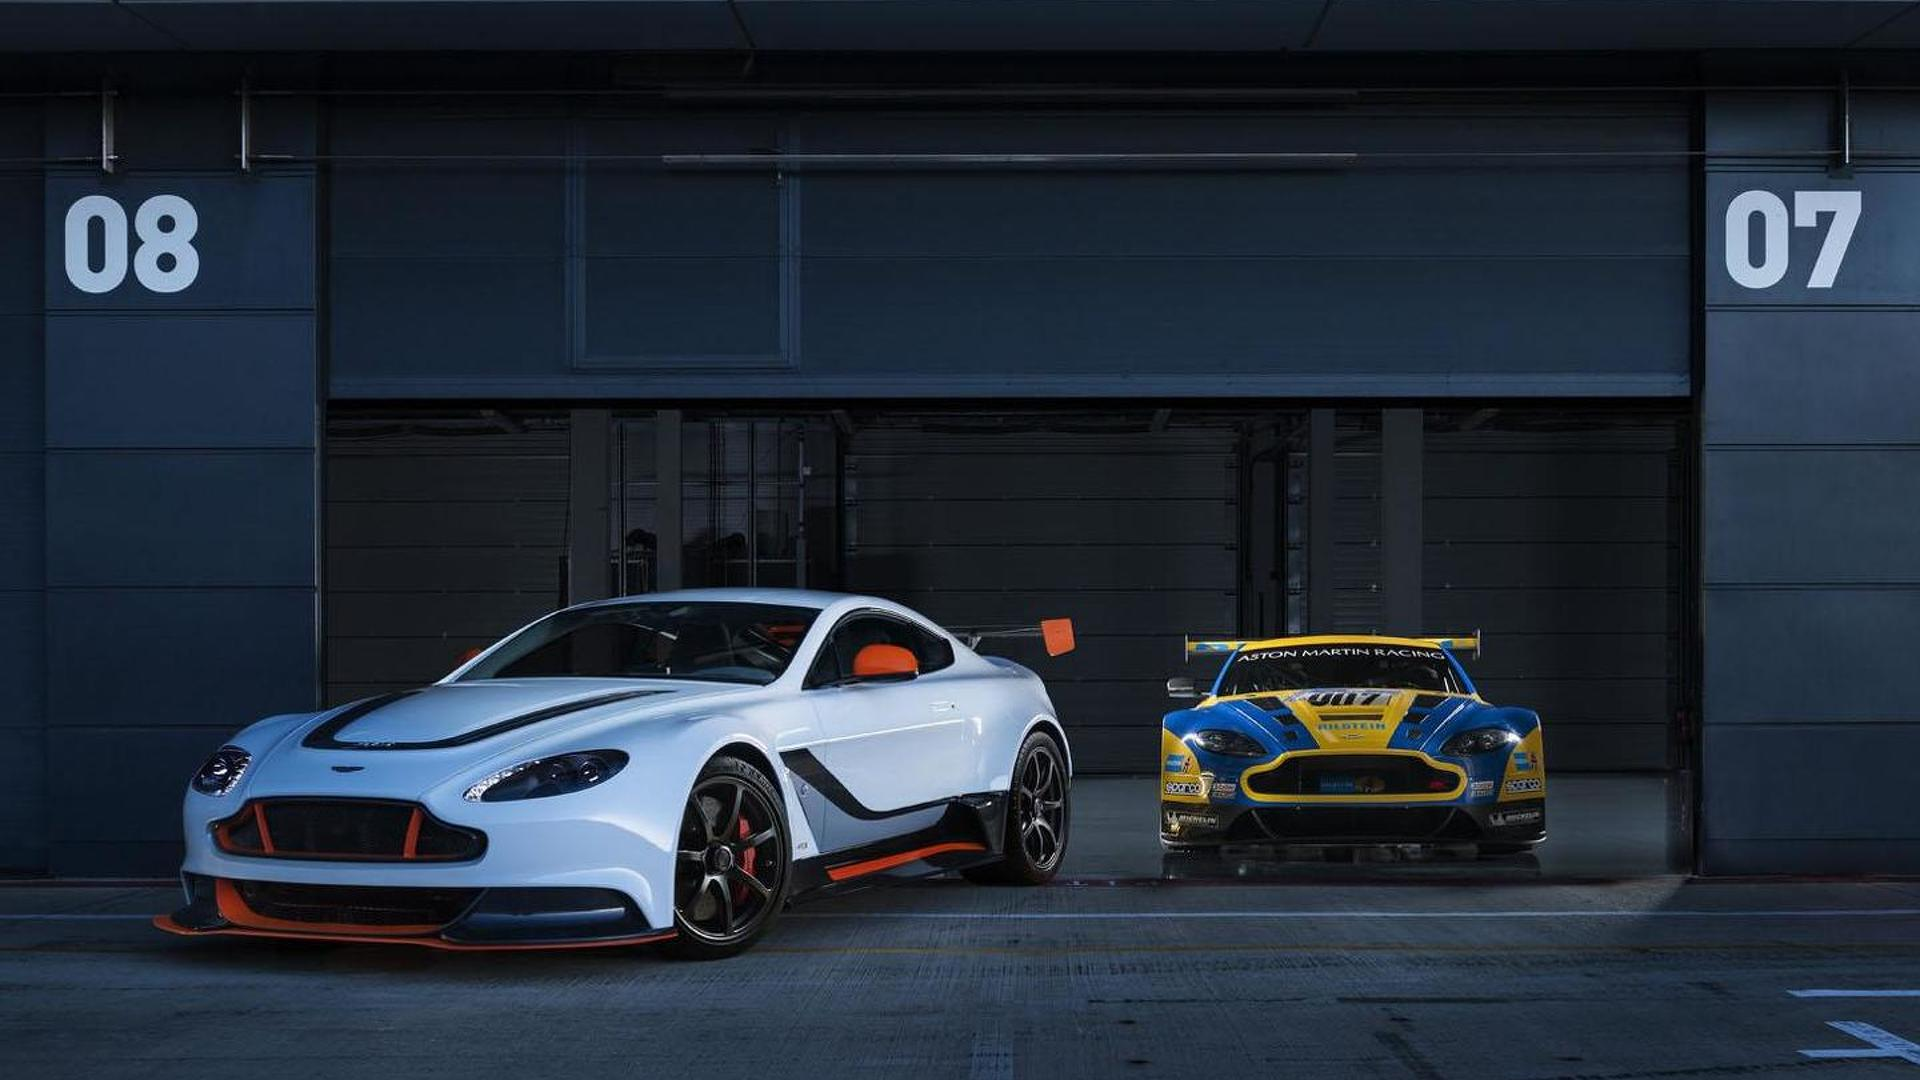 Aston Martin Vantage GT3 to be renamed over Porsche's objections